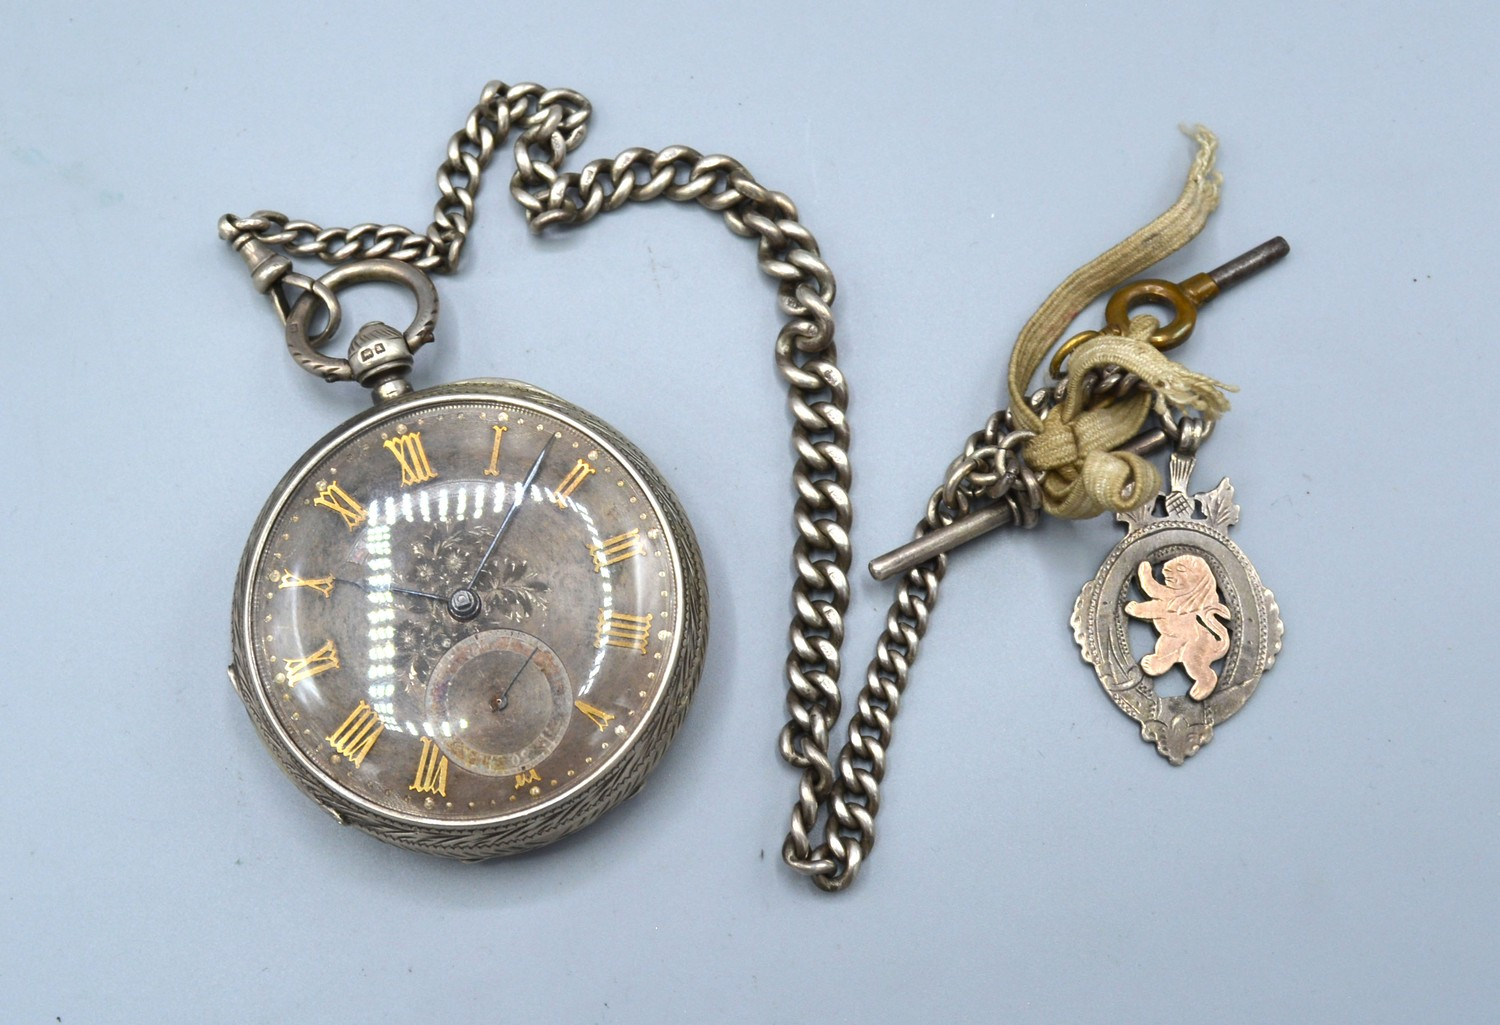 A Chester silver cased pocket watch, the engraved dial with gold mounts and with silver cur link